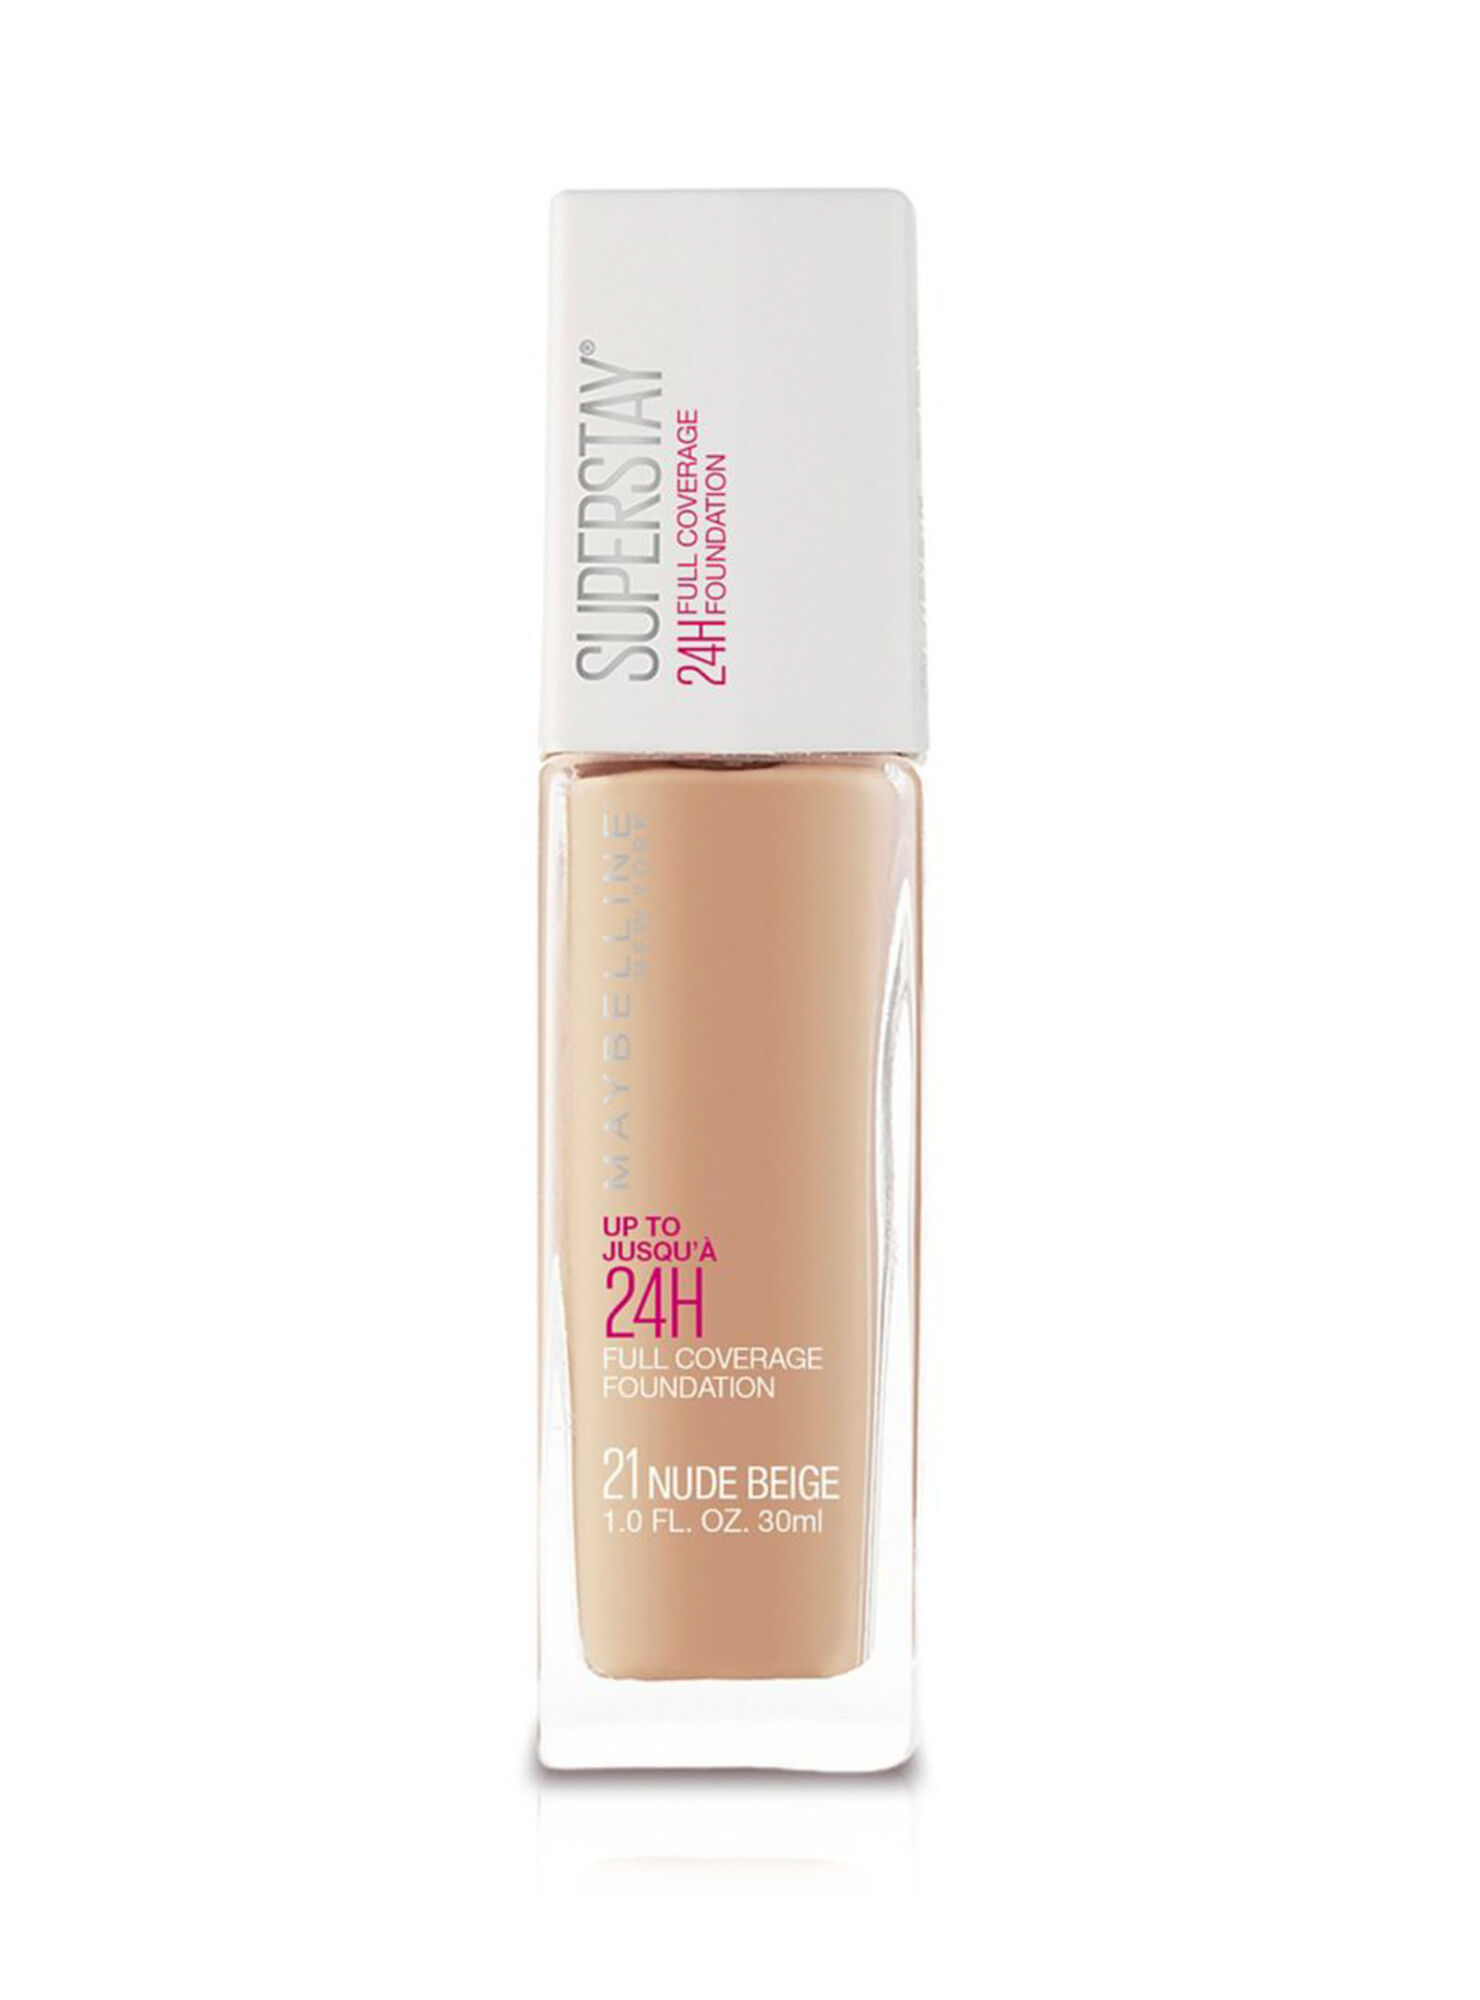 688390b0b Images. Base de Maquillaje Superstay 24 Horas Full Coverage 021 Nude Beige  Maybelline ...